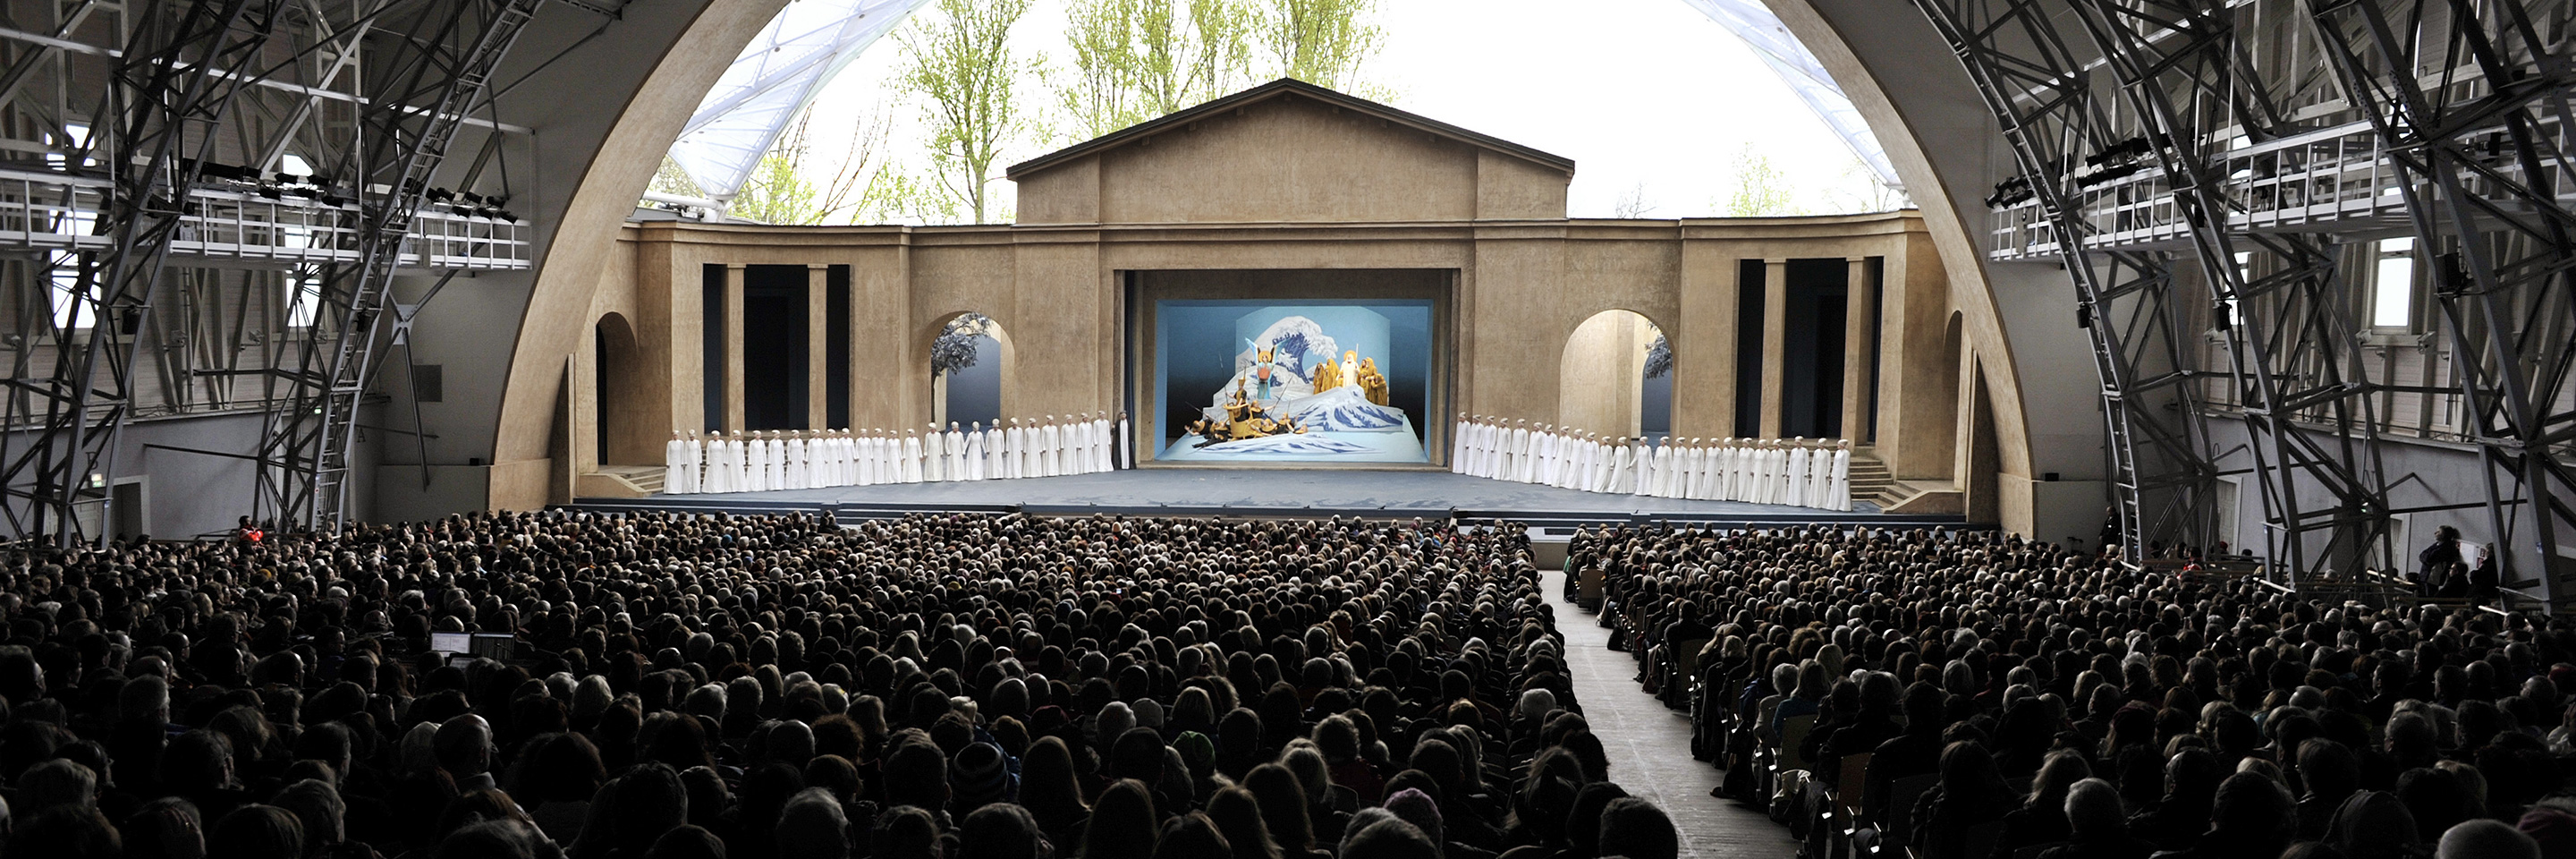 Oberammergau Passion Play 2022 Tours